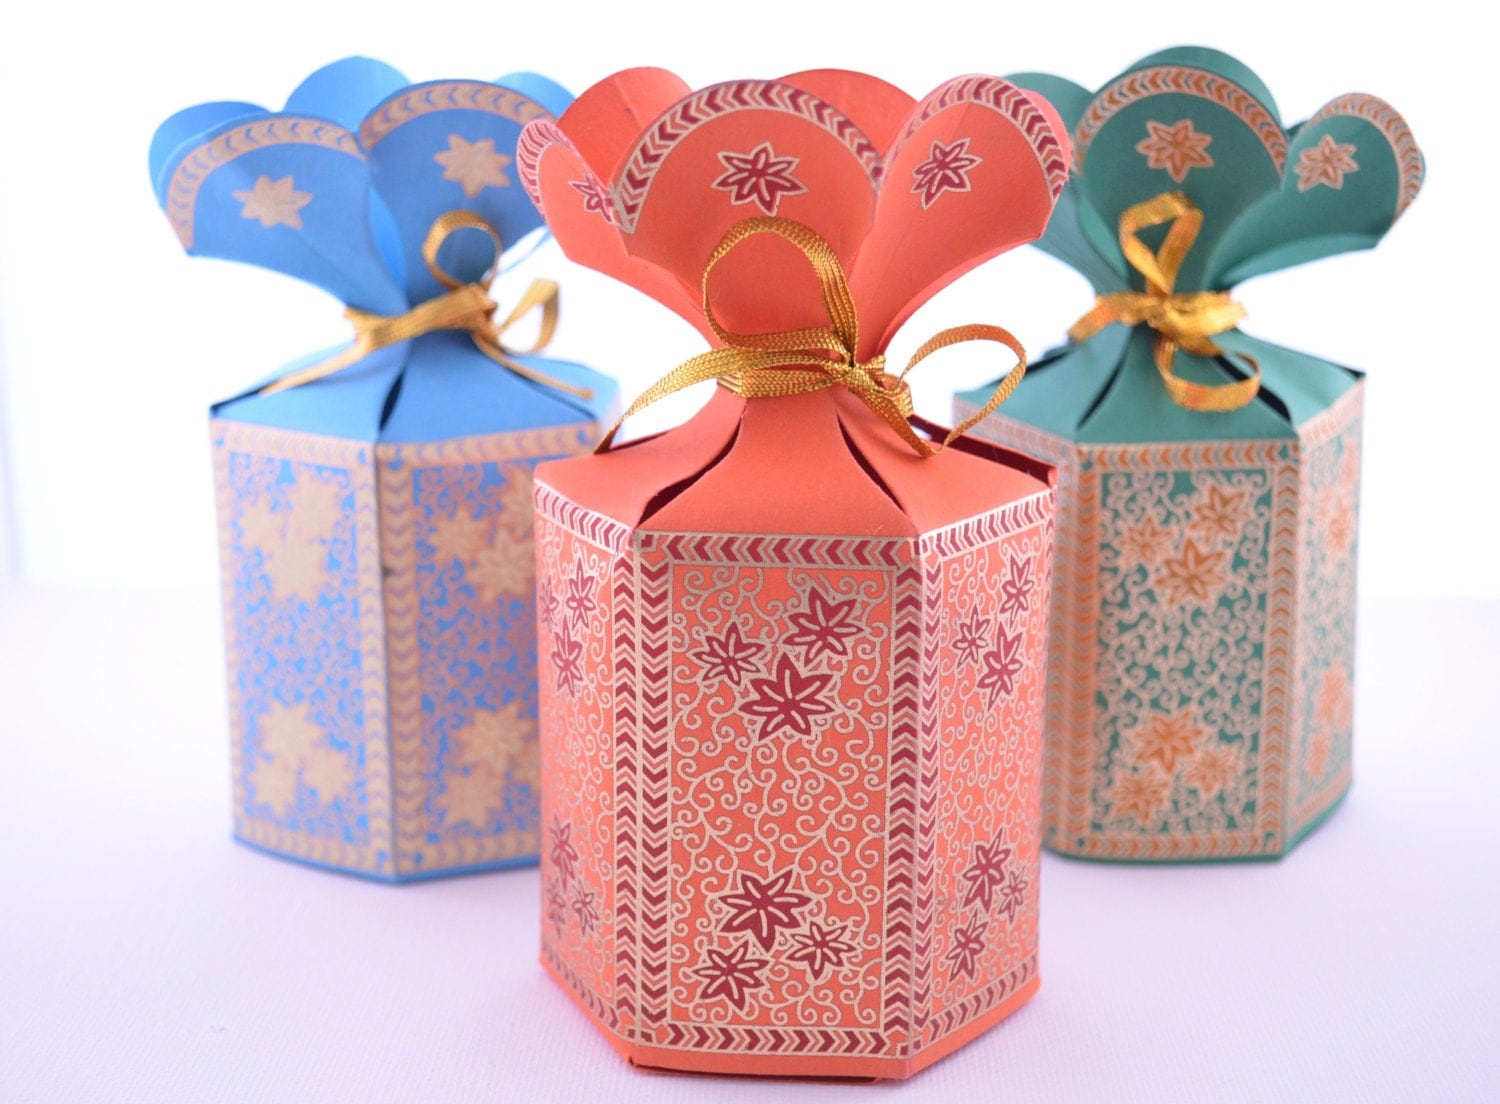 Wedding Gift Boxes Lahore : Photo Credits: https://img1.etsystatic.com/020/0/7577202/il_fullxfull ...